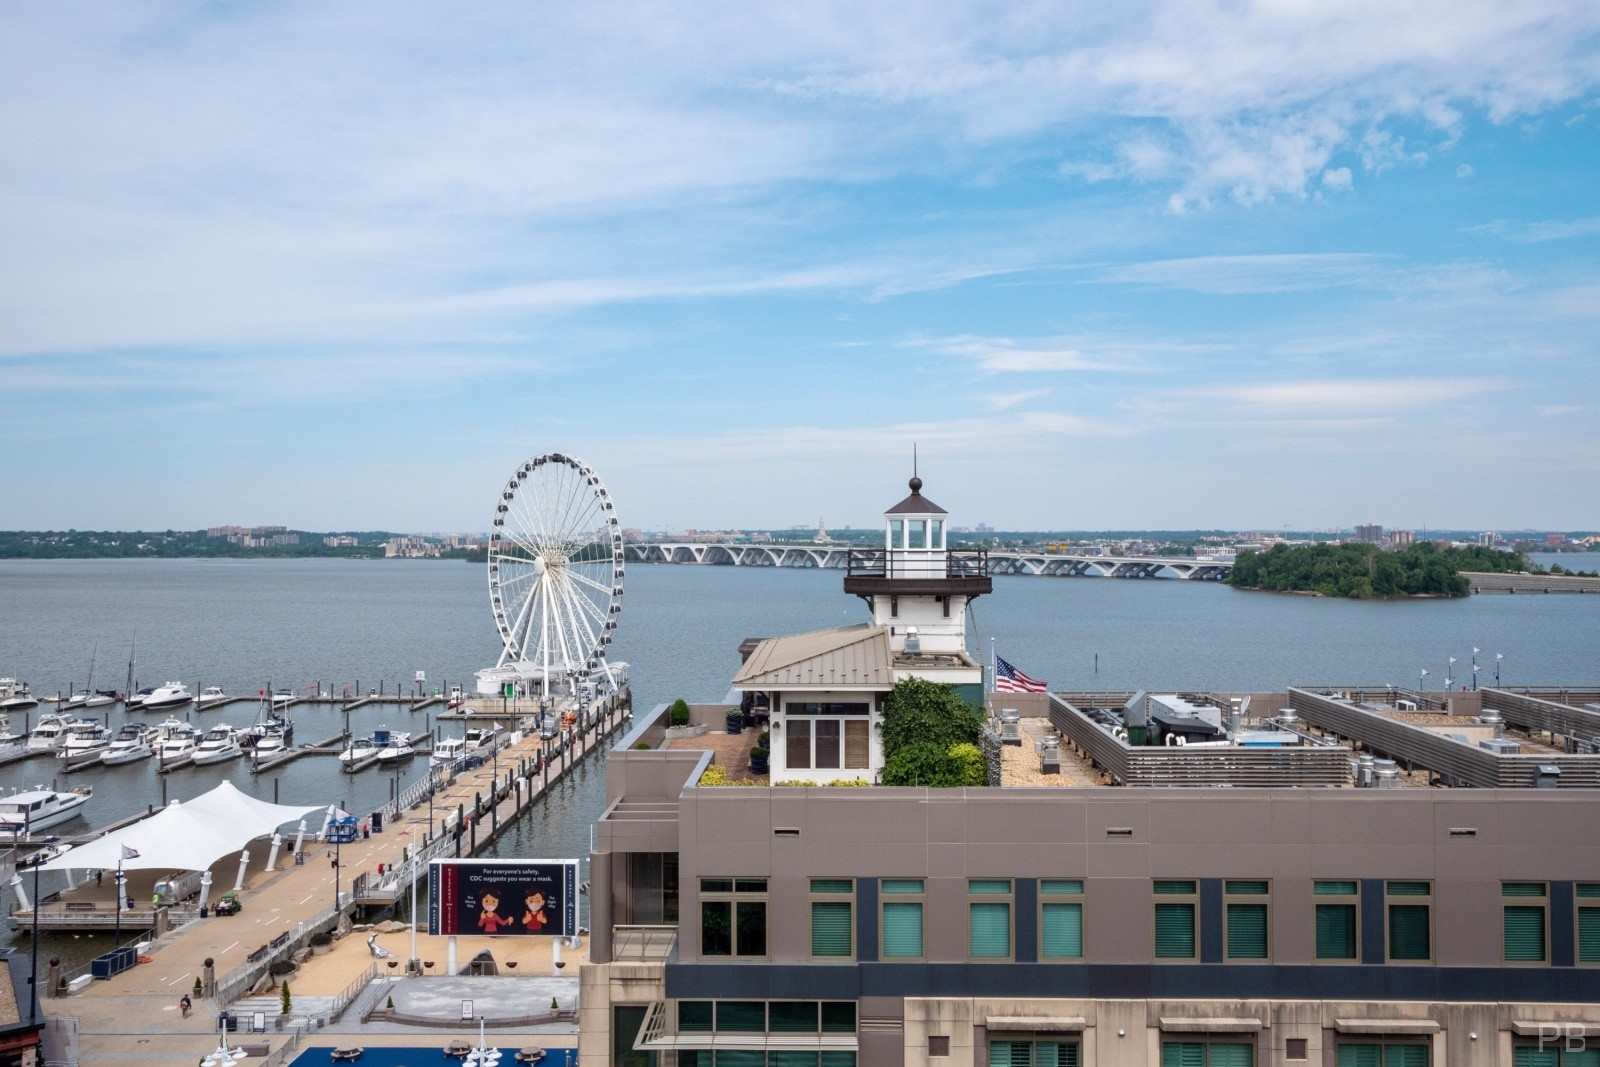 National Harbor and The Capital Wheel